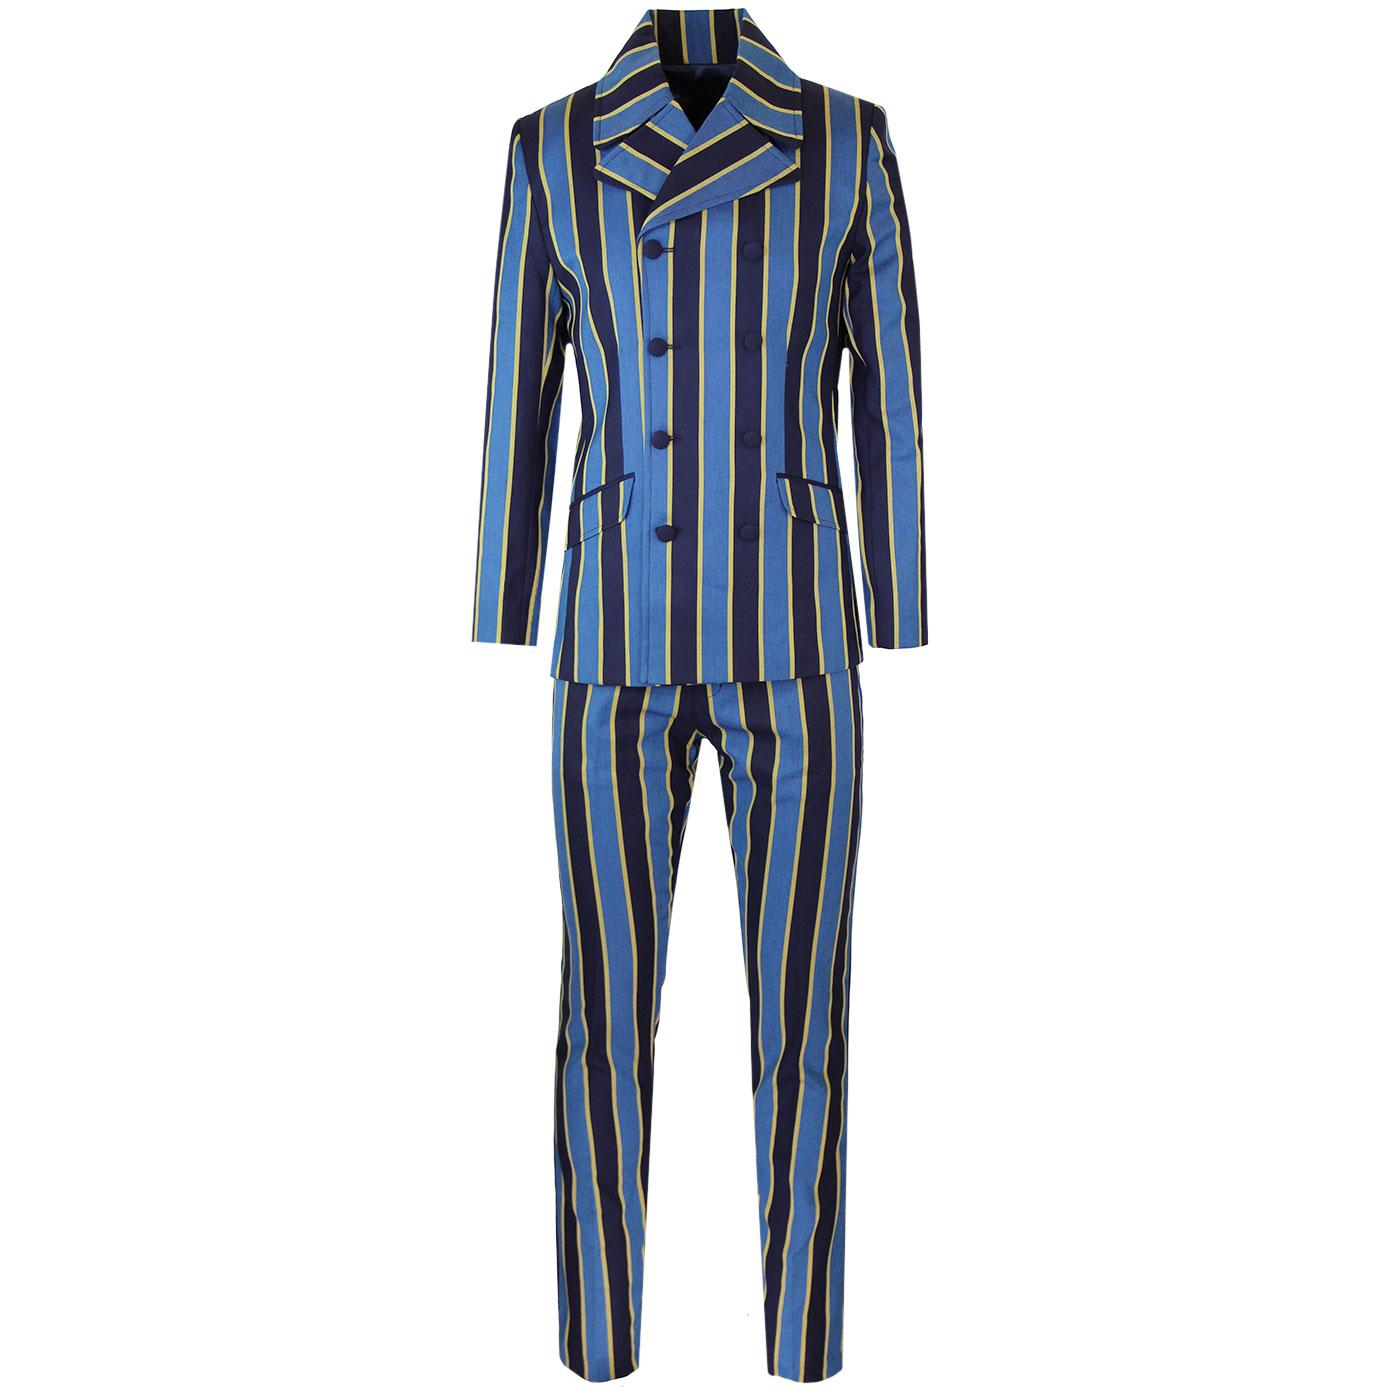 Backbeat MADCAP ENGLAND Mod Double Breasted Suit